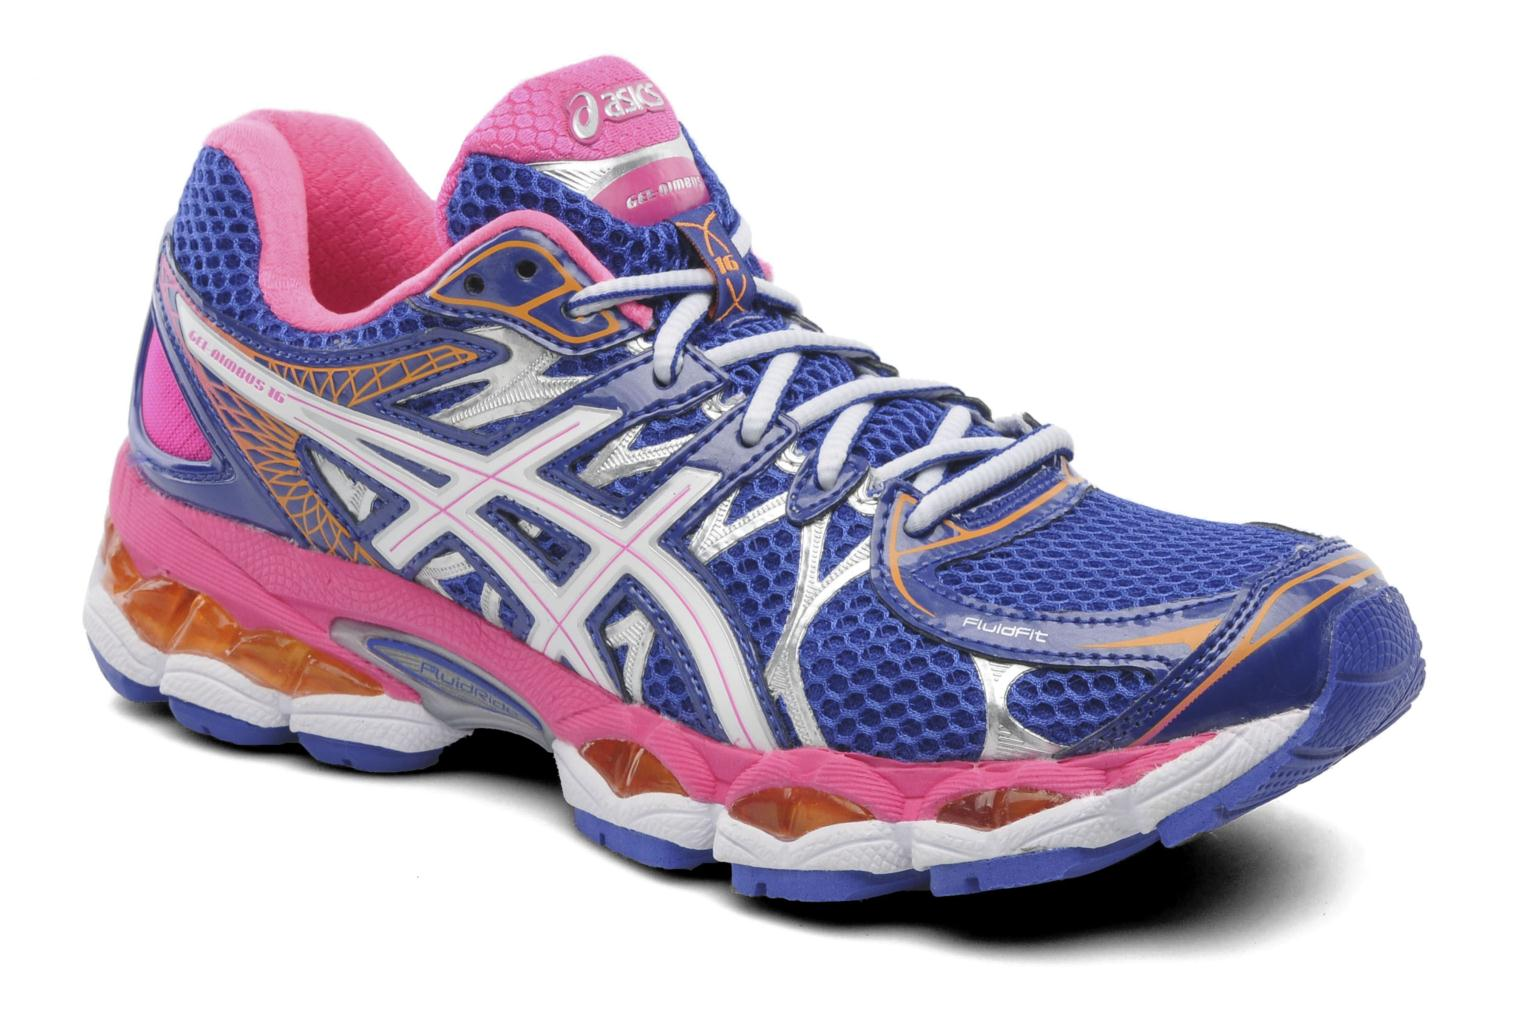 asics gel nimbus 16 w sport shoes in multicolor at 212077. Black Bedroom Furniture Sets. Home Design Ideas